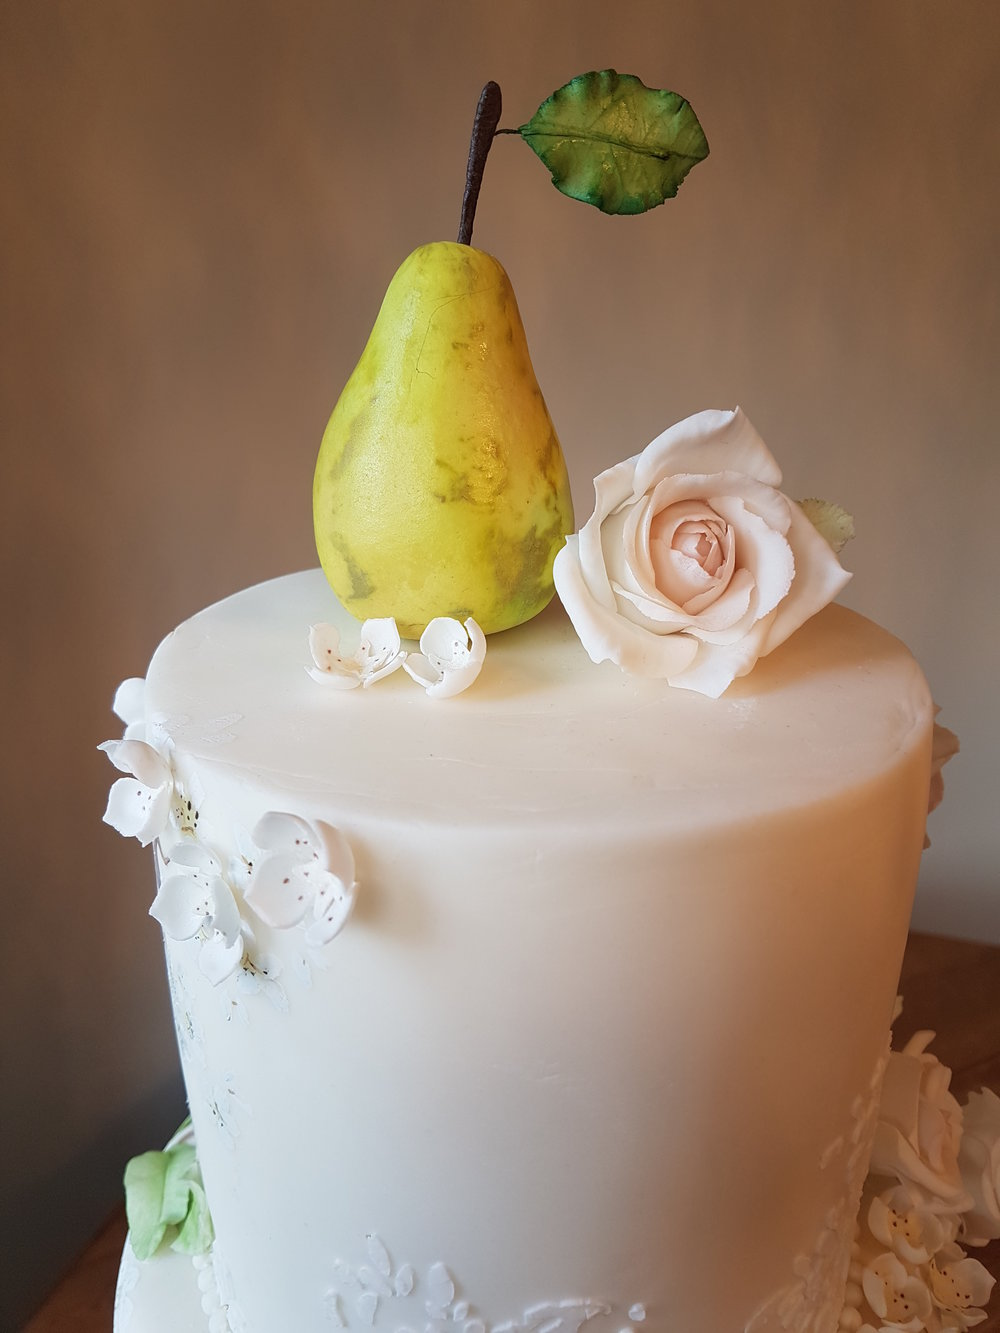 Secret Garden - handmade Sugar Pear